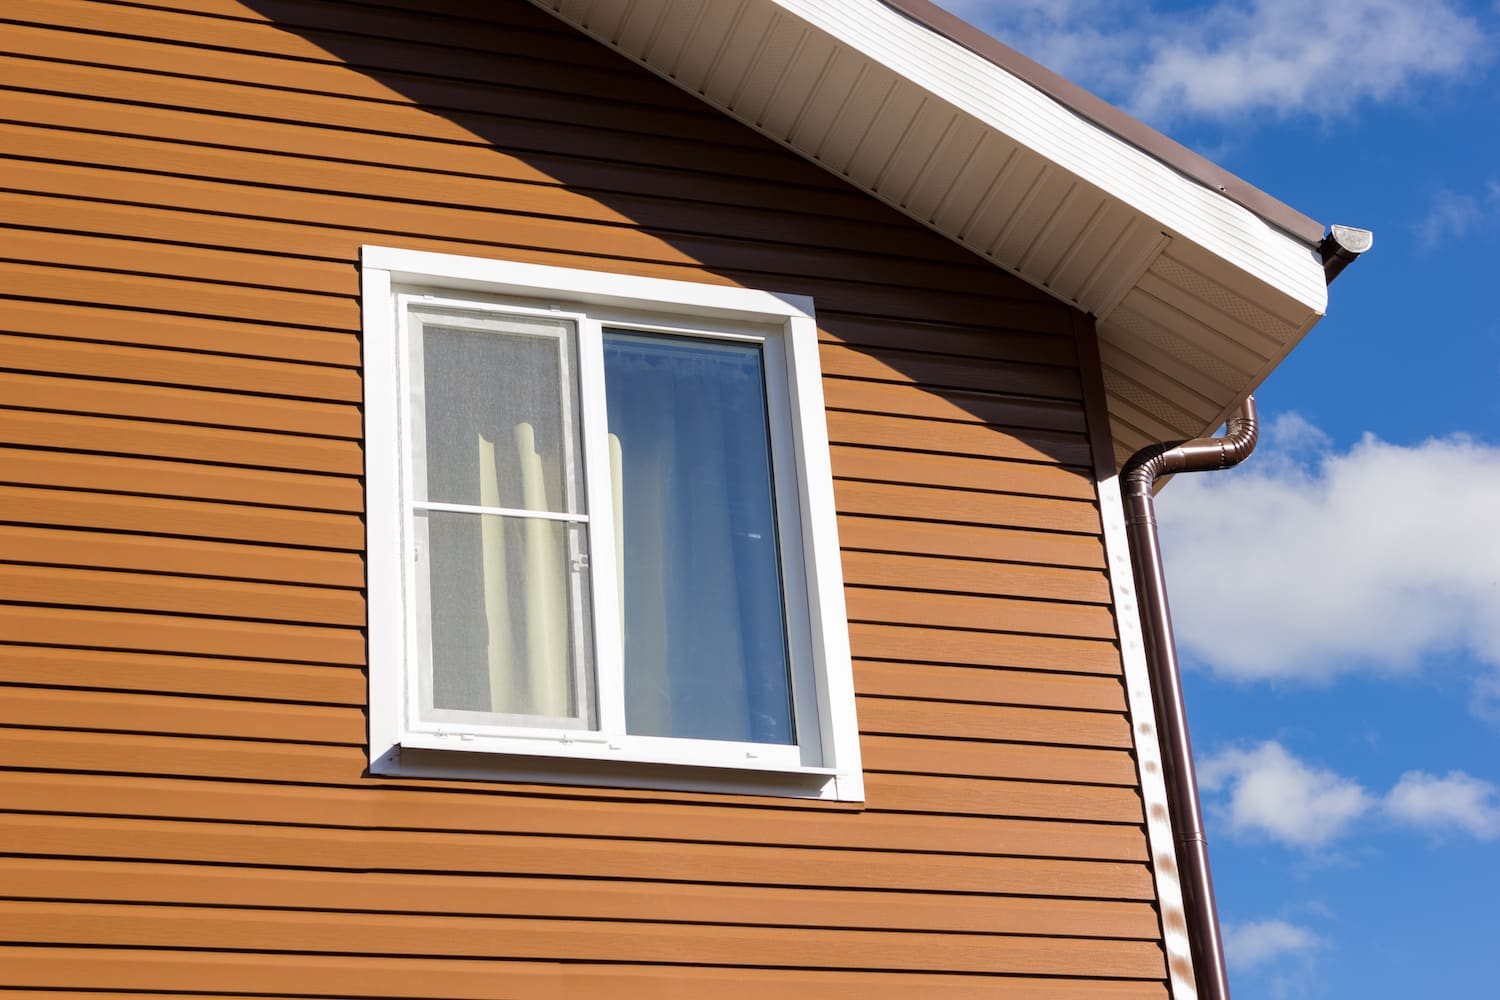 Replace the siding